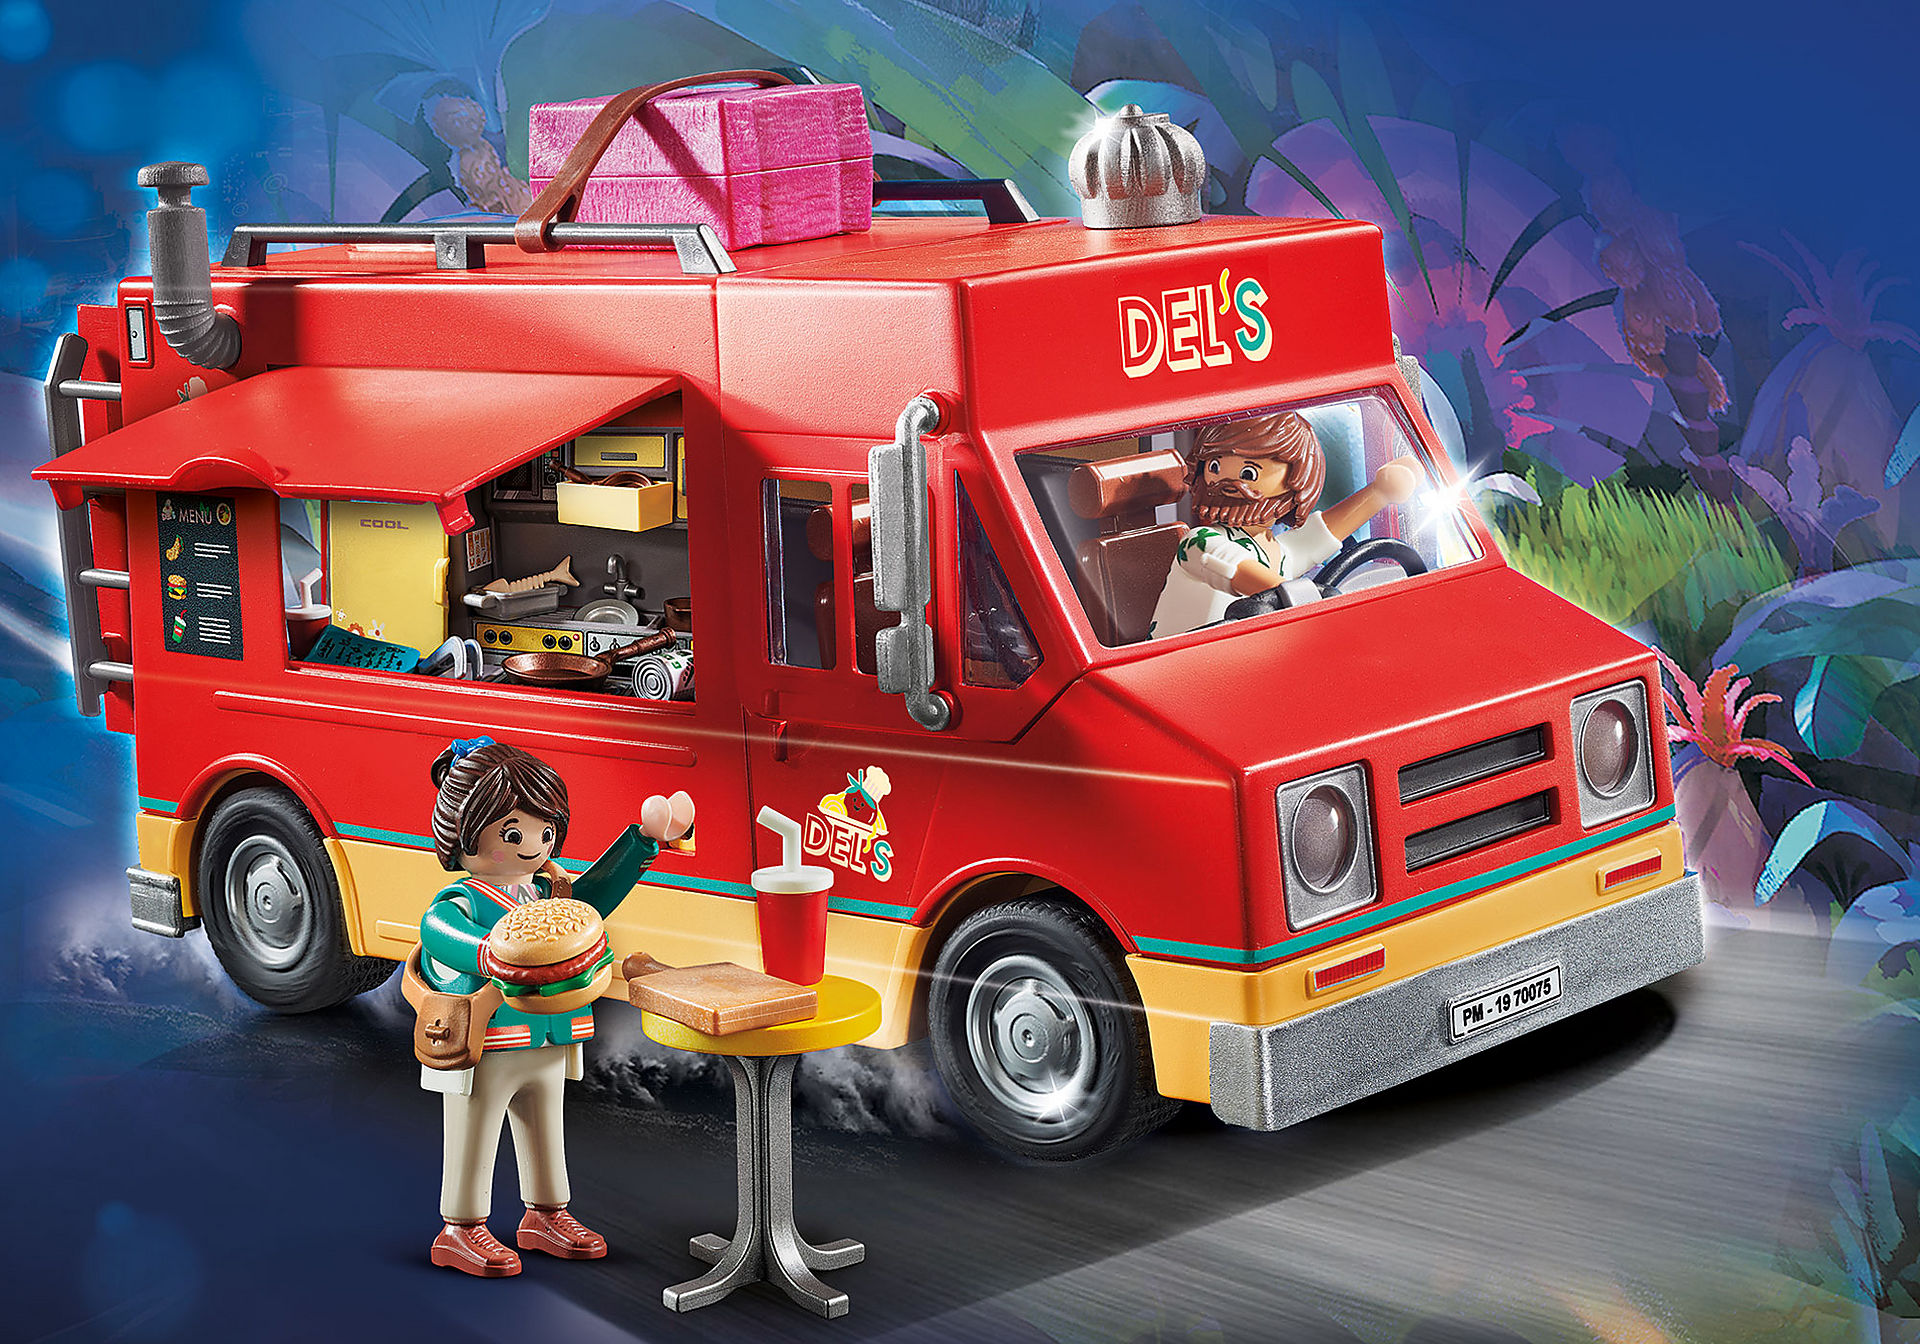 70075 PLAYMOBIL: THE MOVIE Dels Food Truck zoom image1